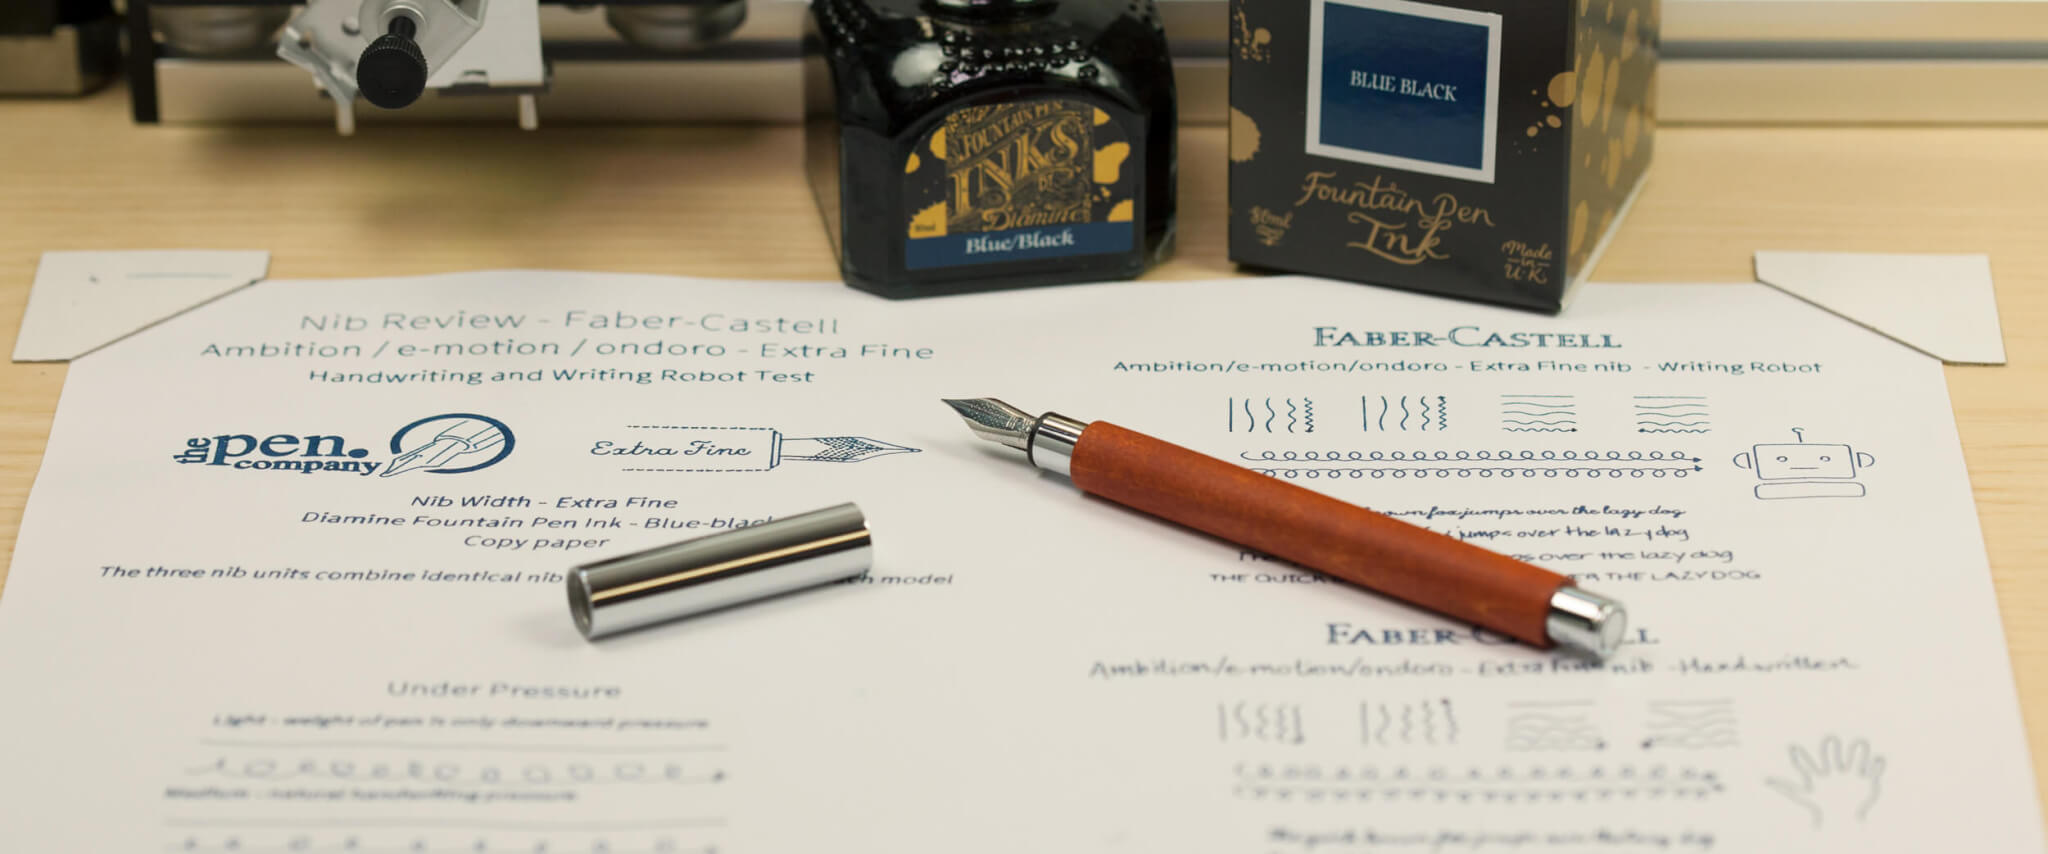 Faber-Castell with Diamine ink and writing robot